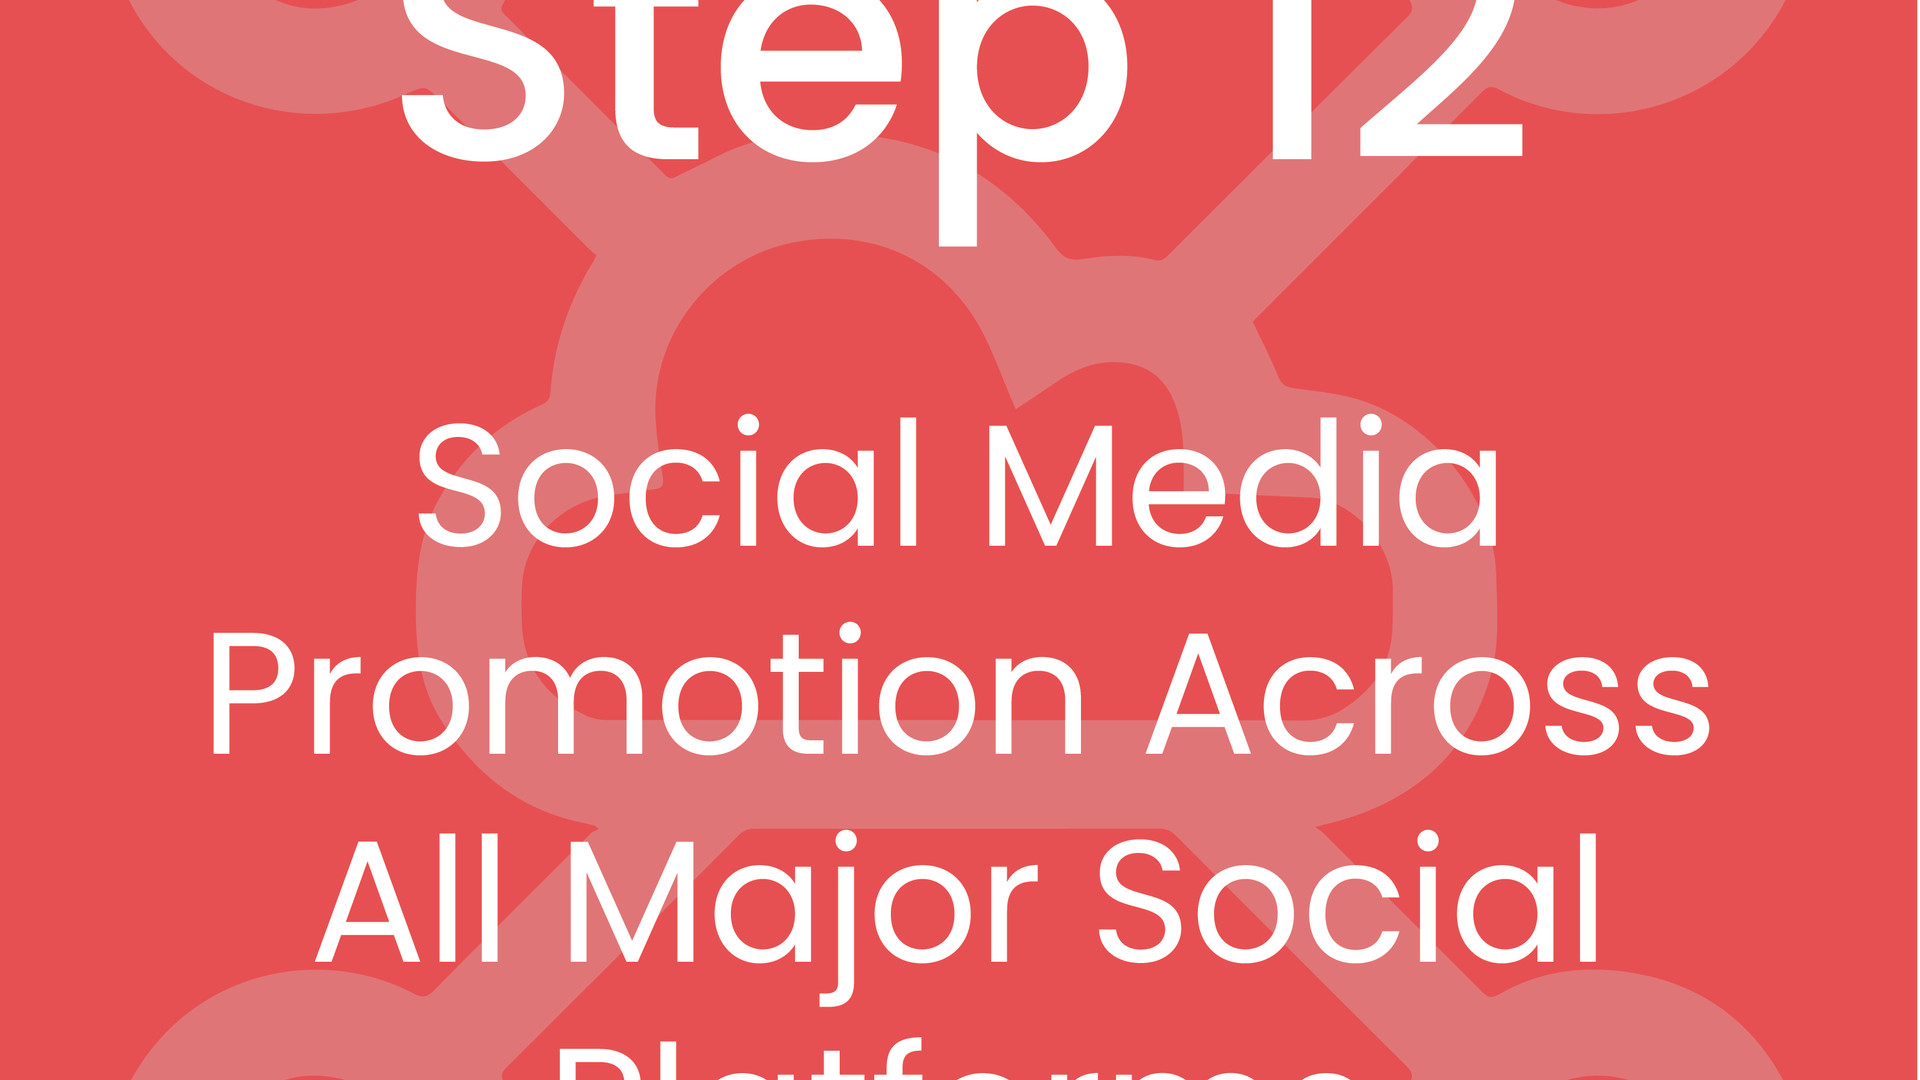 Step 12: Social Media Promotion Across All Major Social Platforms